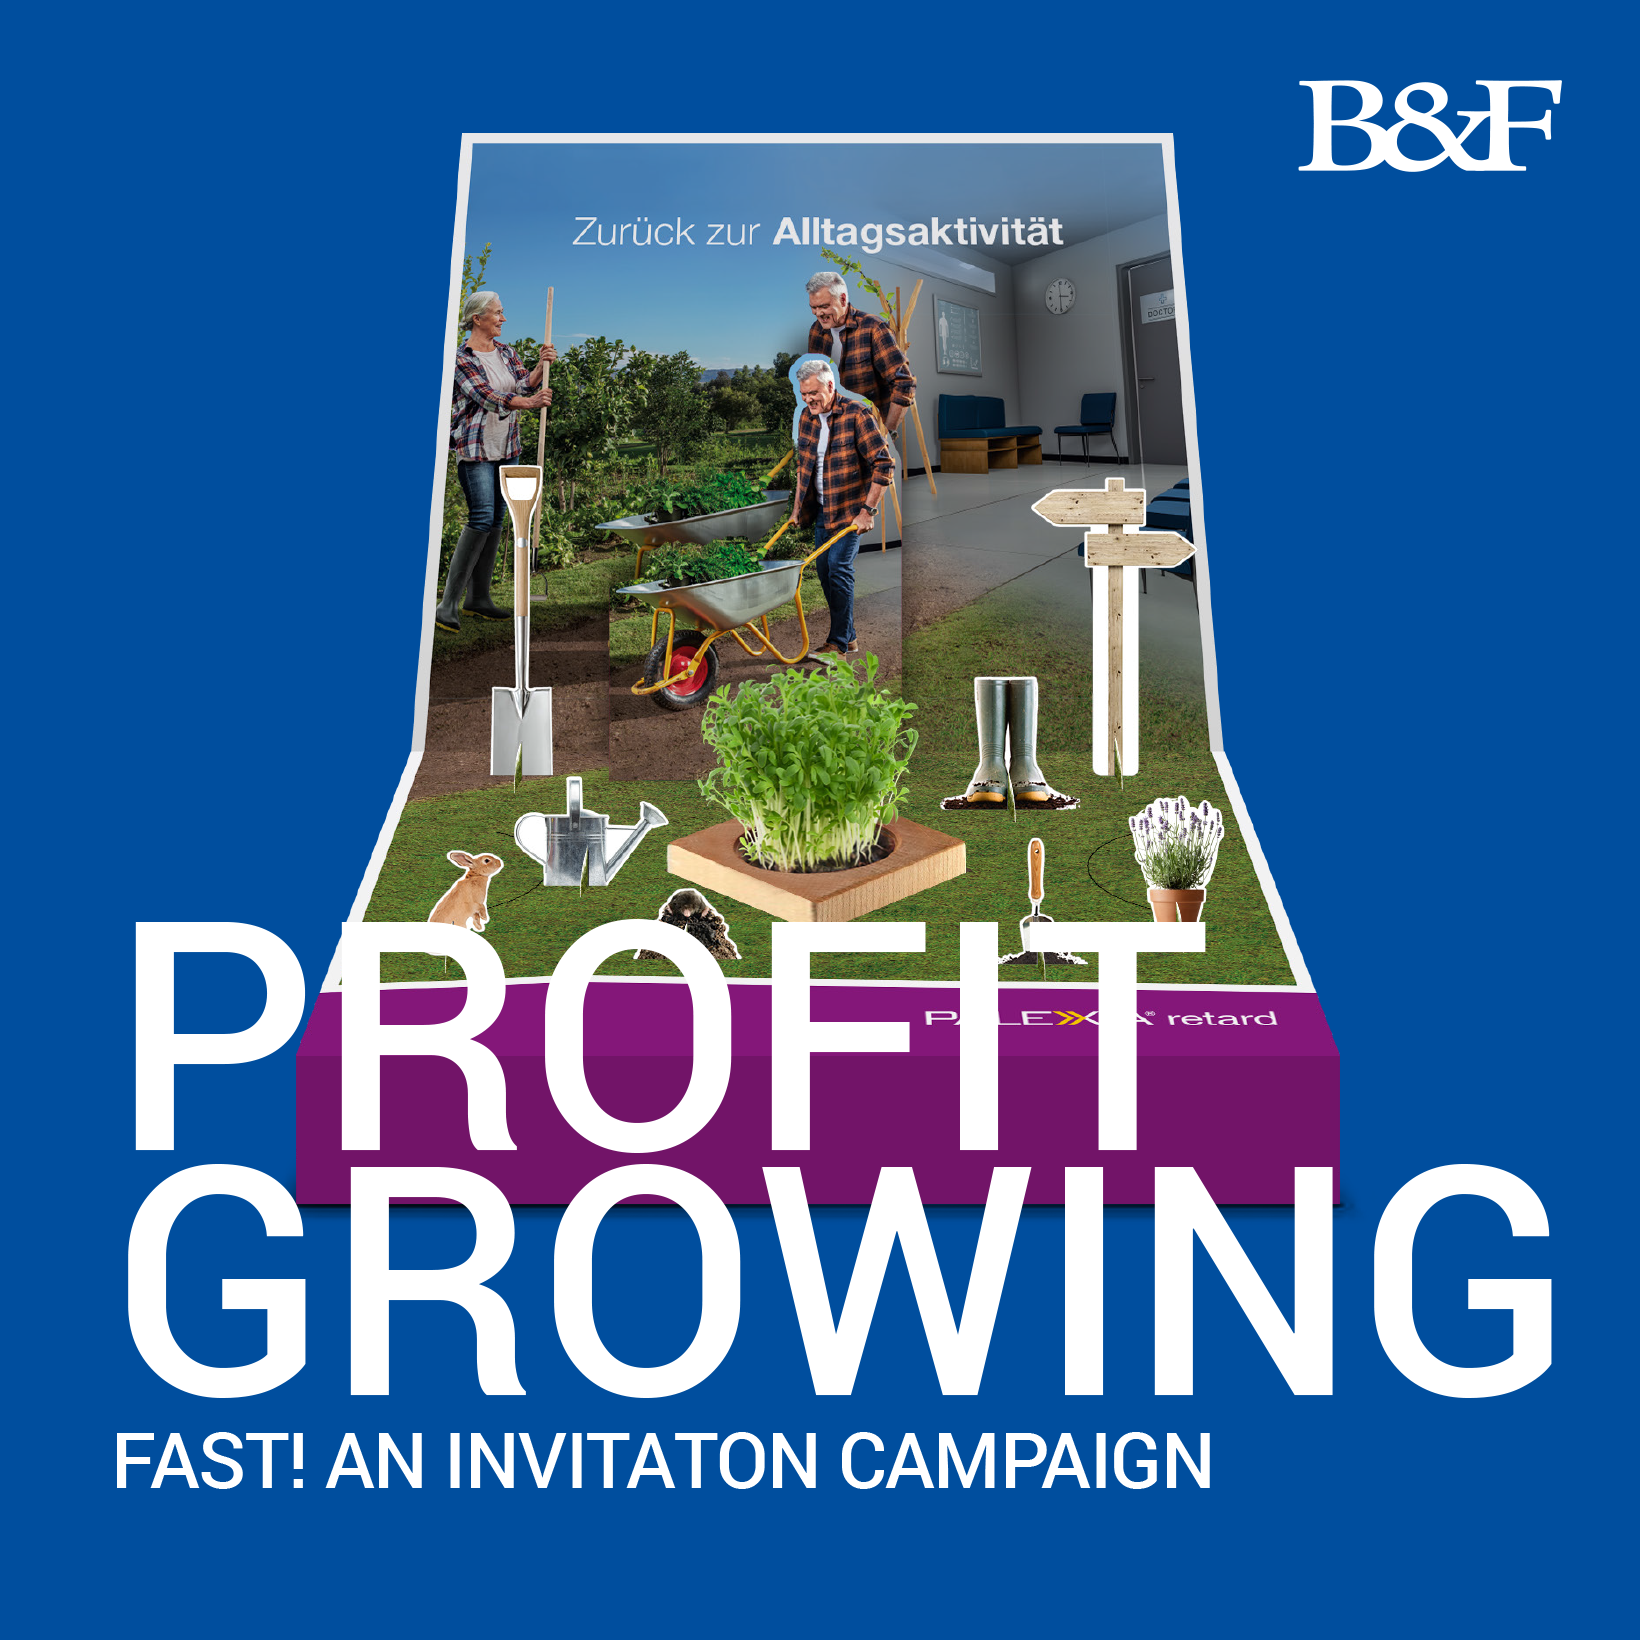 Profit growing fast campaign